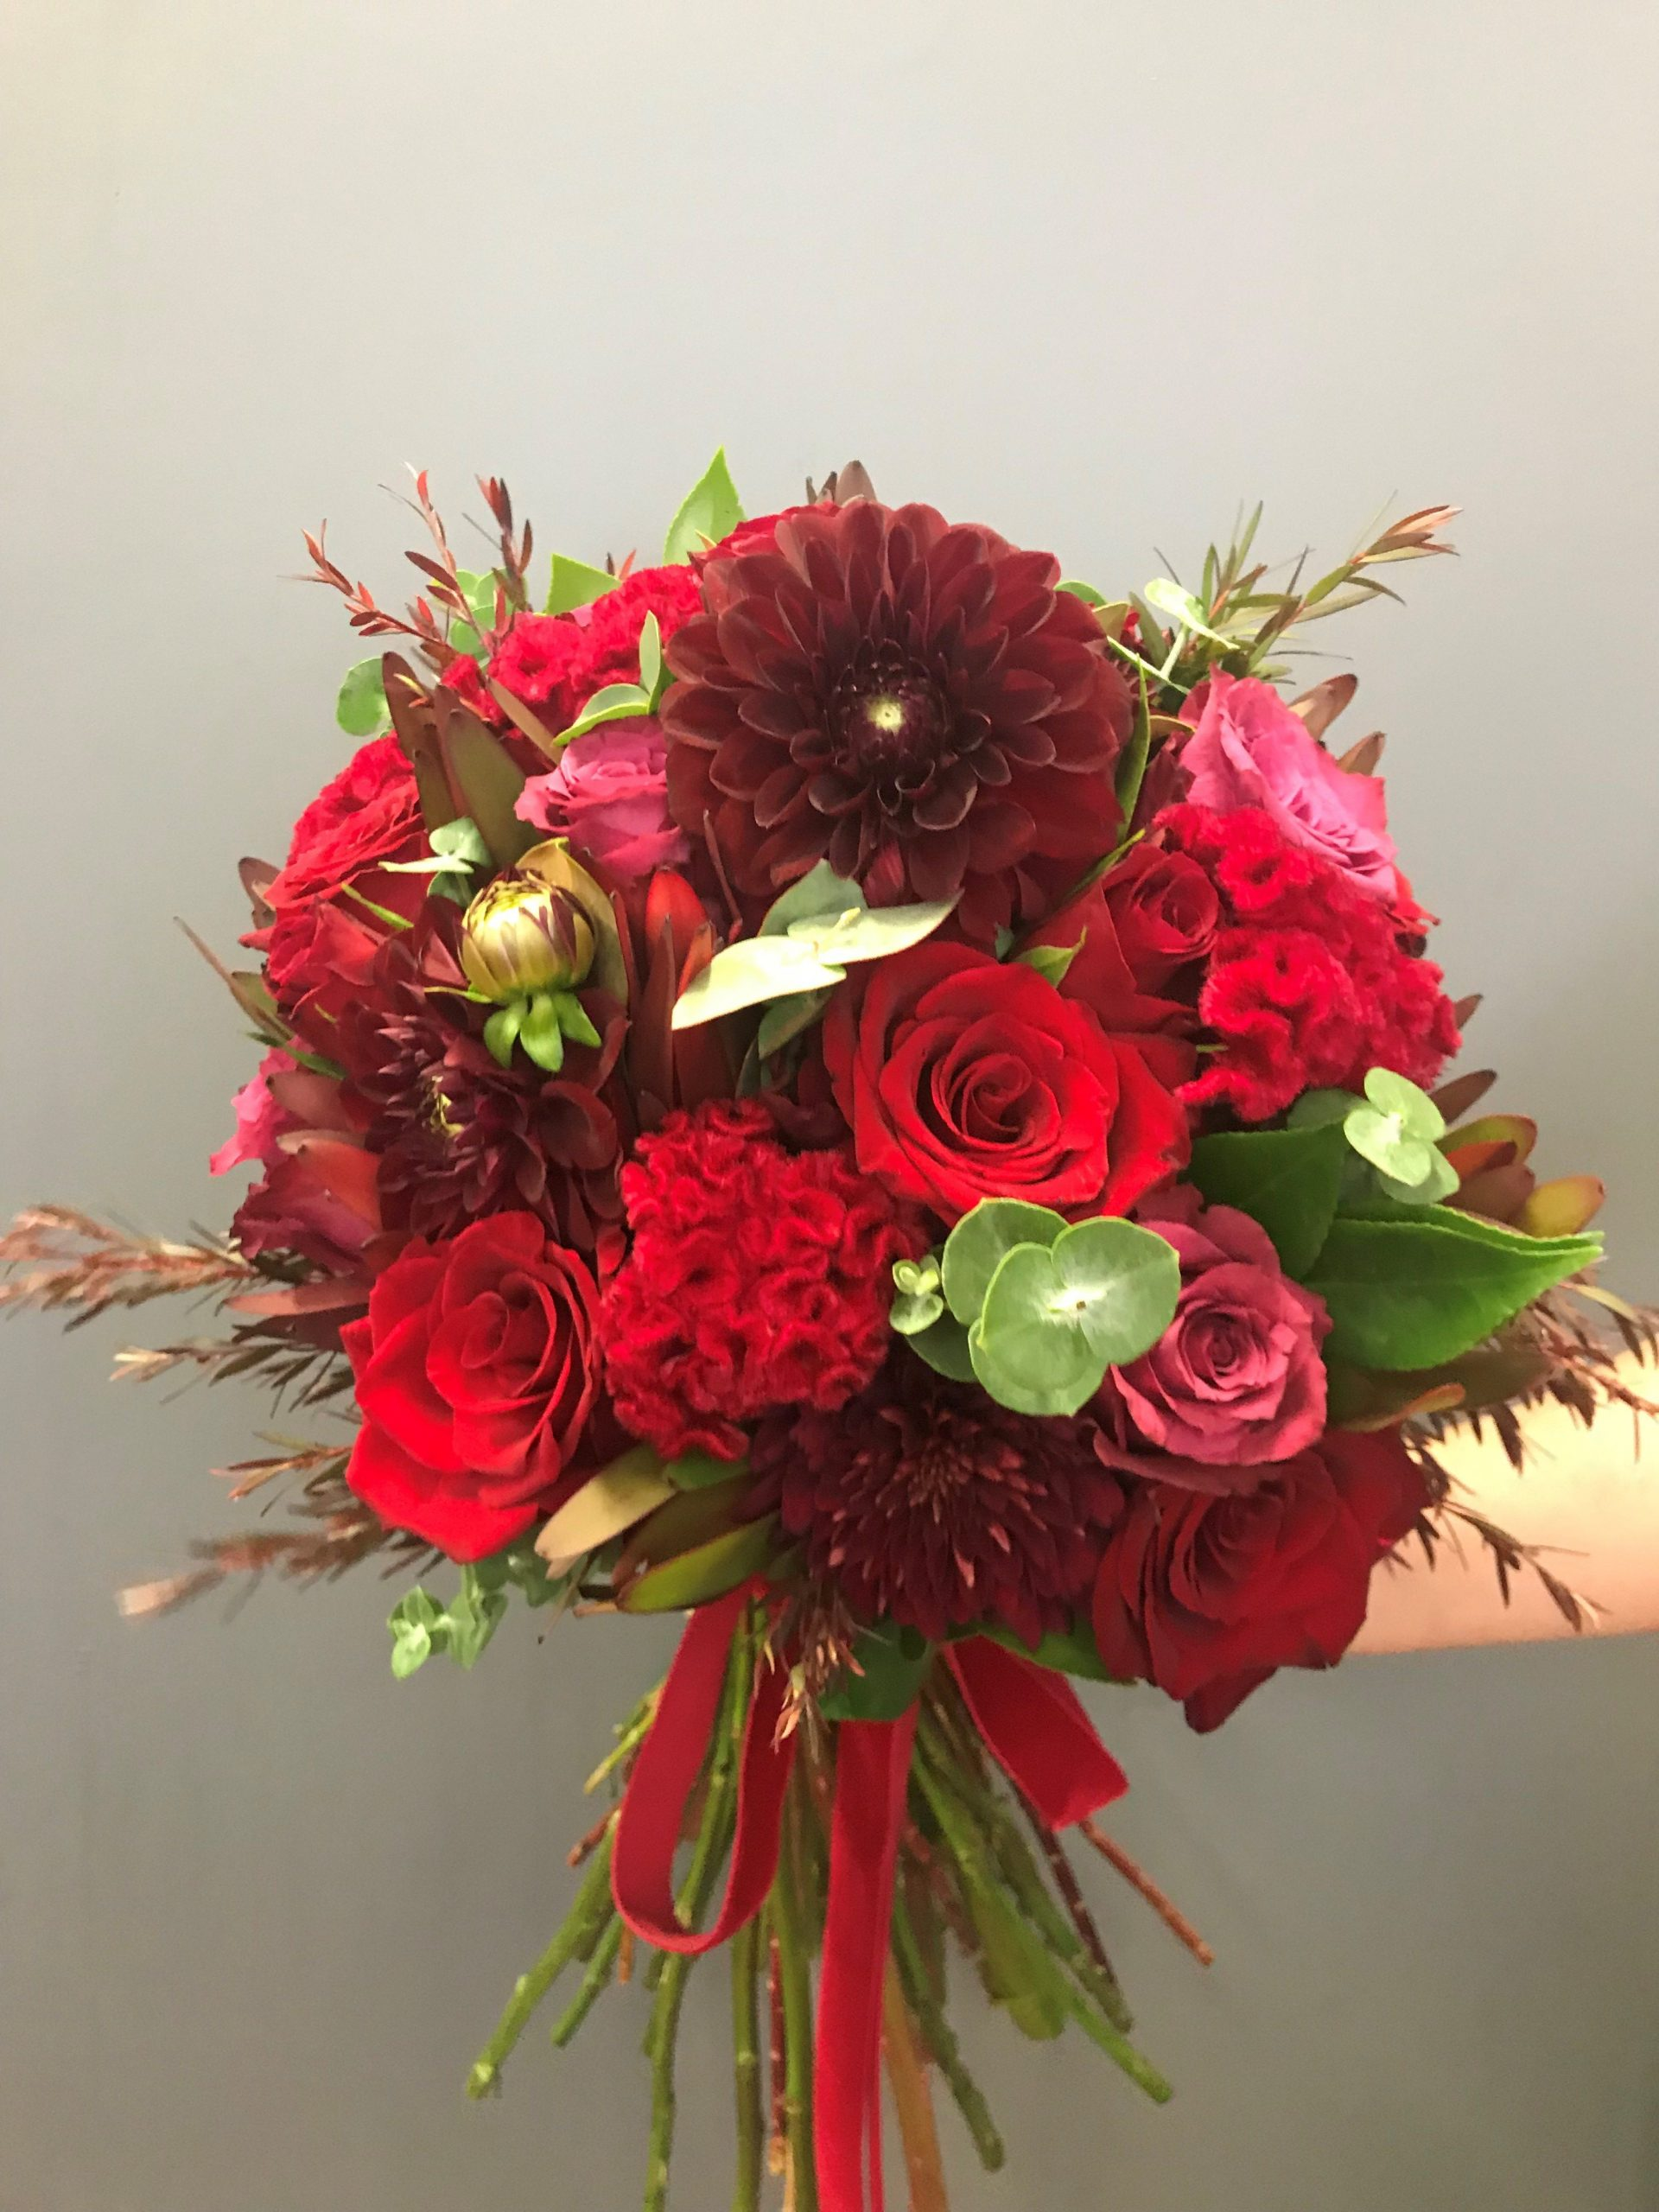 wedding bouquet, tamworth wedding, bridal bouquet, burgundy bouquet, tamworth weddings, tamworth florist, florist tamworth, tamworth wedding florist, boho bouquet, berry bouquet